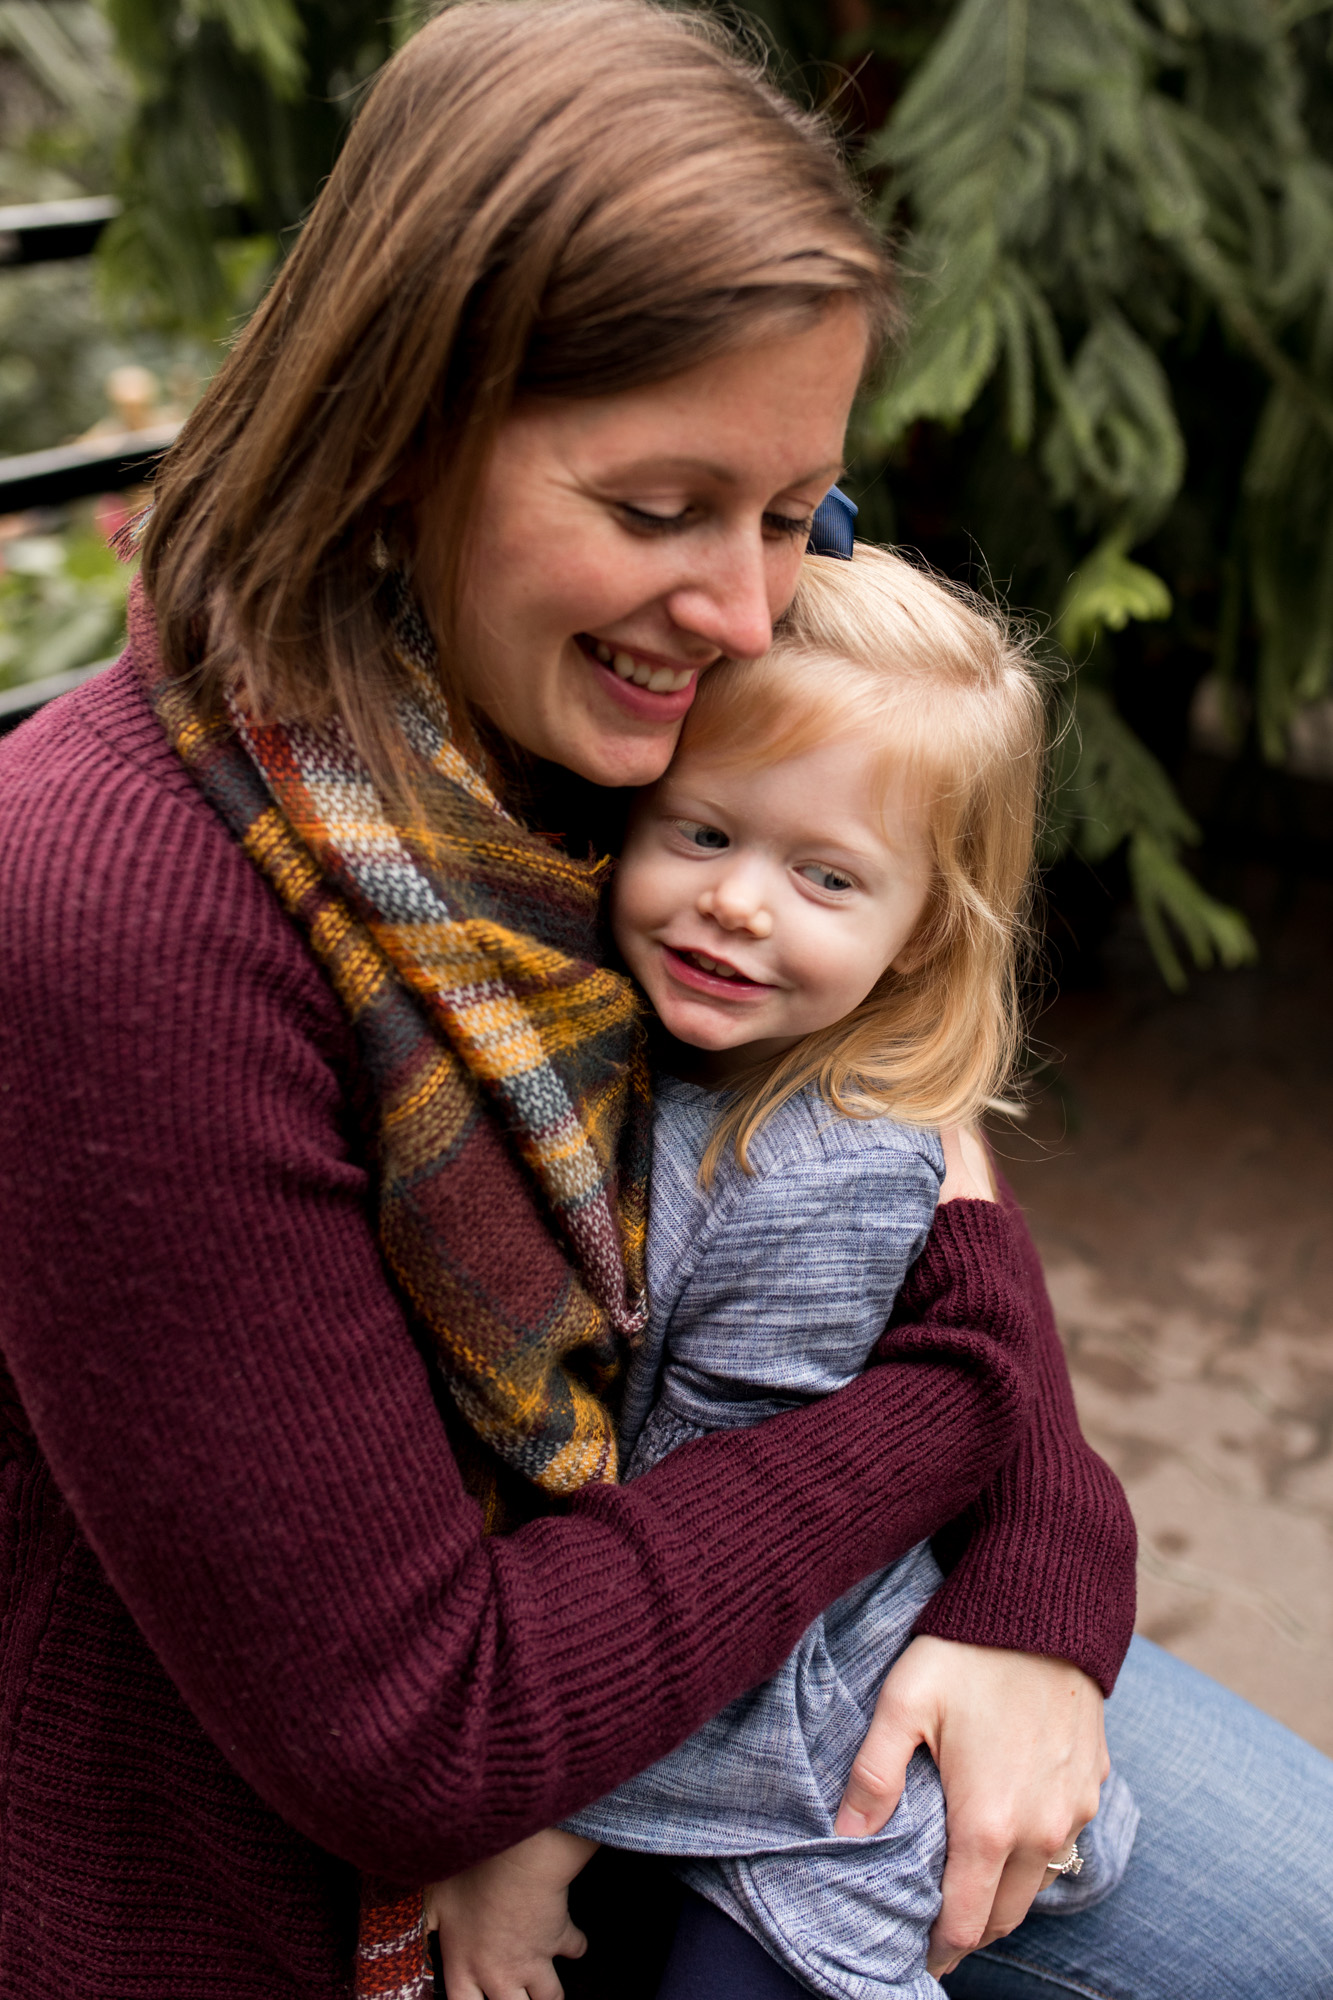 mom hugs daughter during family session at Foellinger-Freimann Botanical Conservatory in Fort Wayne Indiana